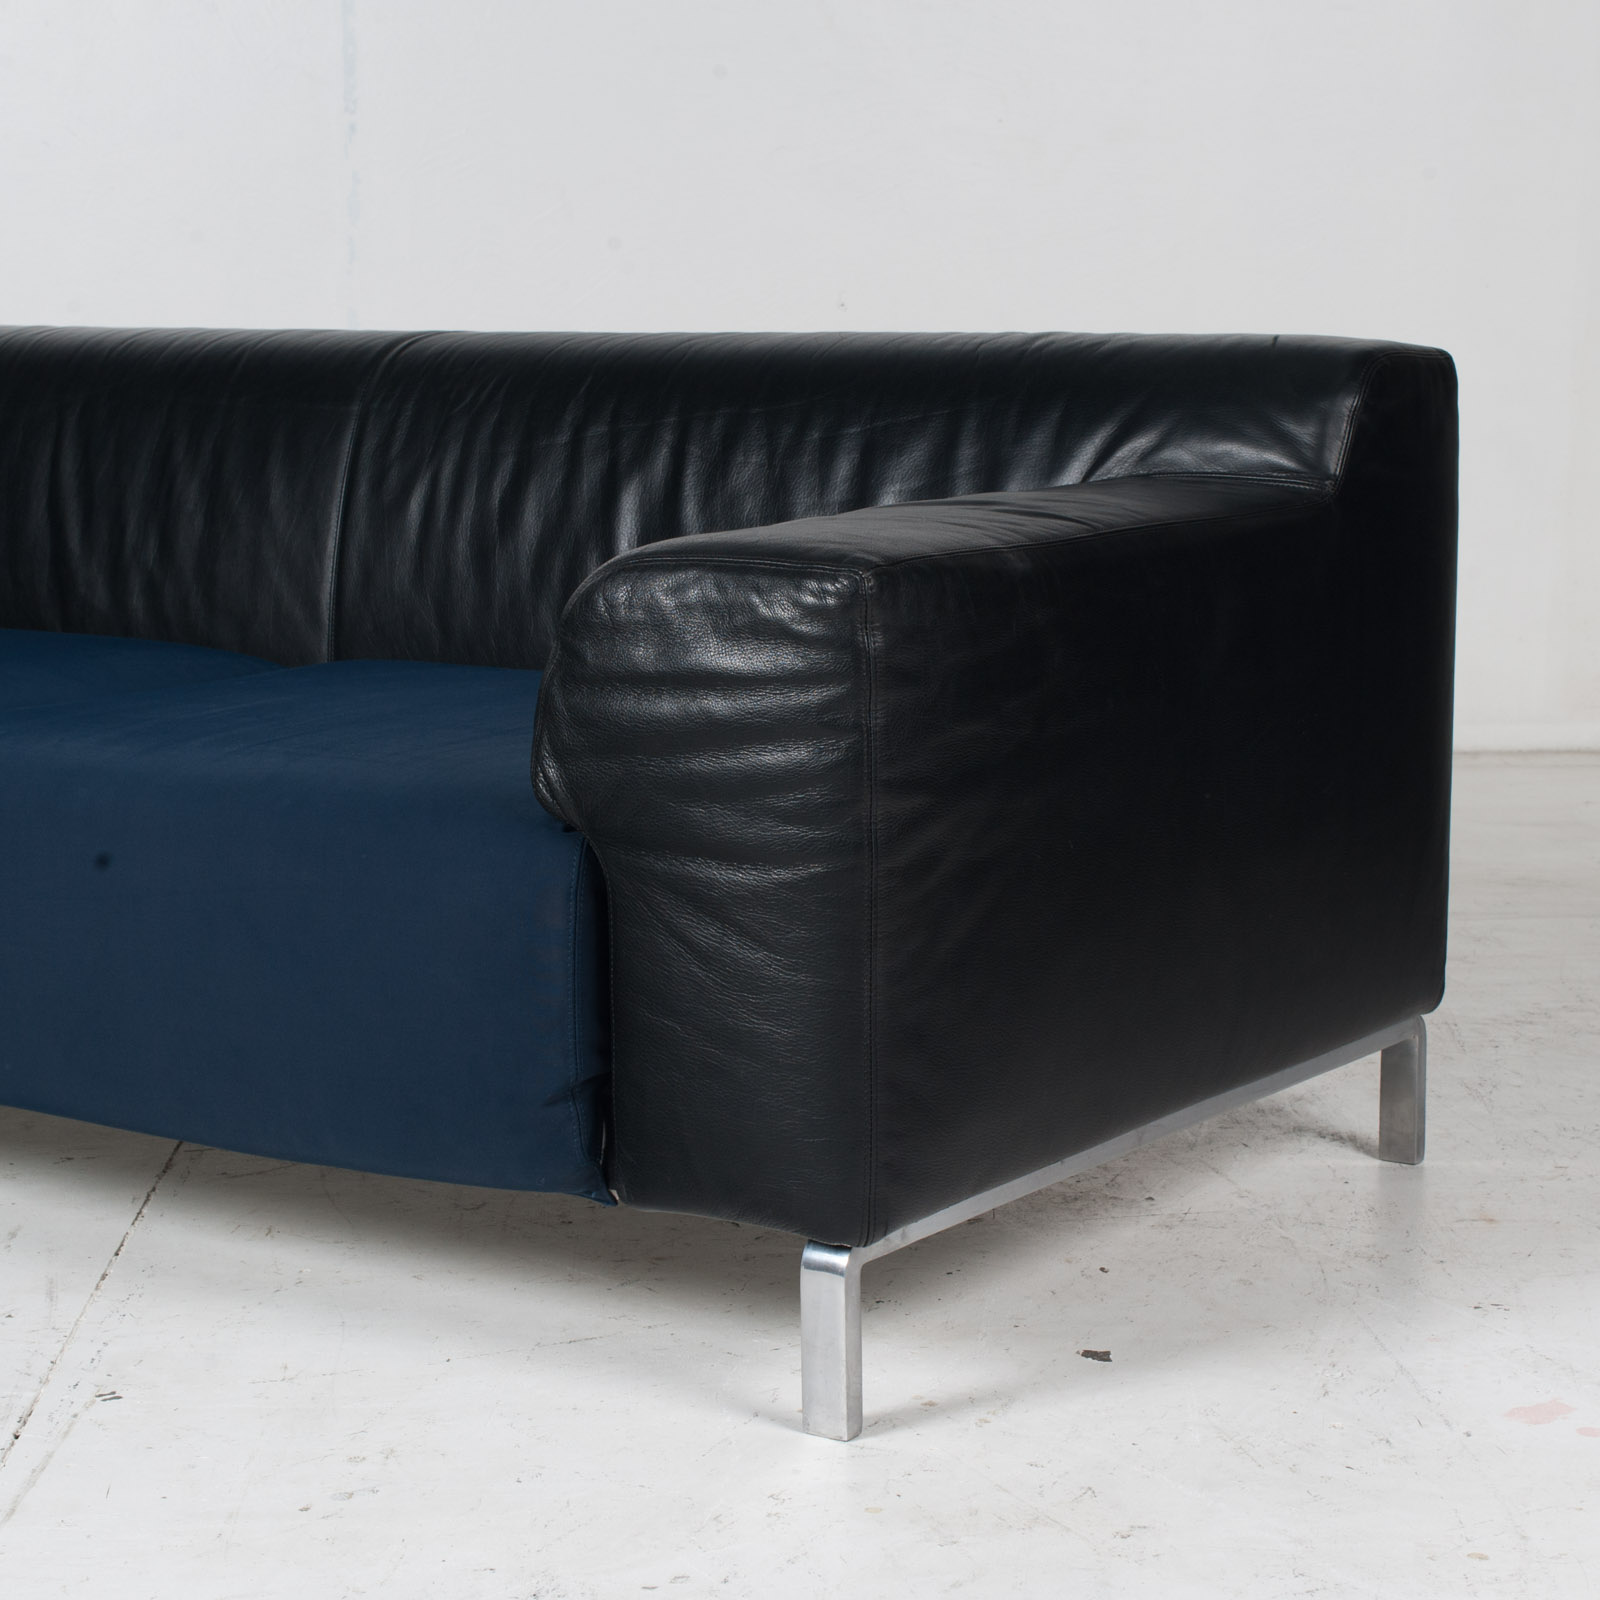 Model Greg 2 Seat Sofa By E. Progetti With Back Upholstered In Black Leather And Seat In Blue Fabric With Chrome Legs, 1960s, Italy 6